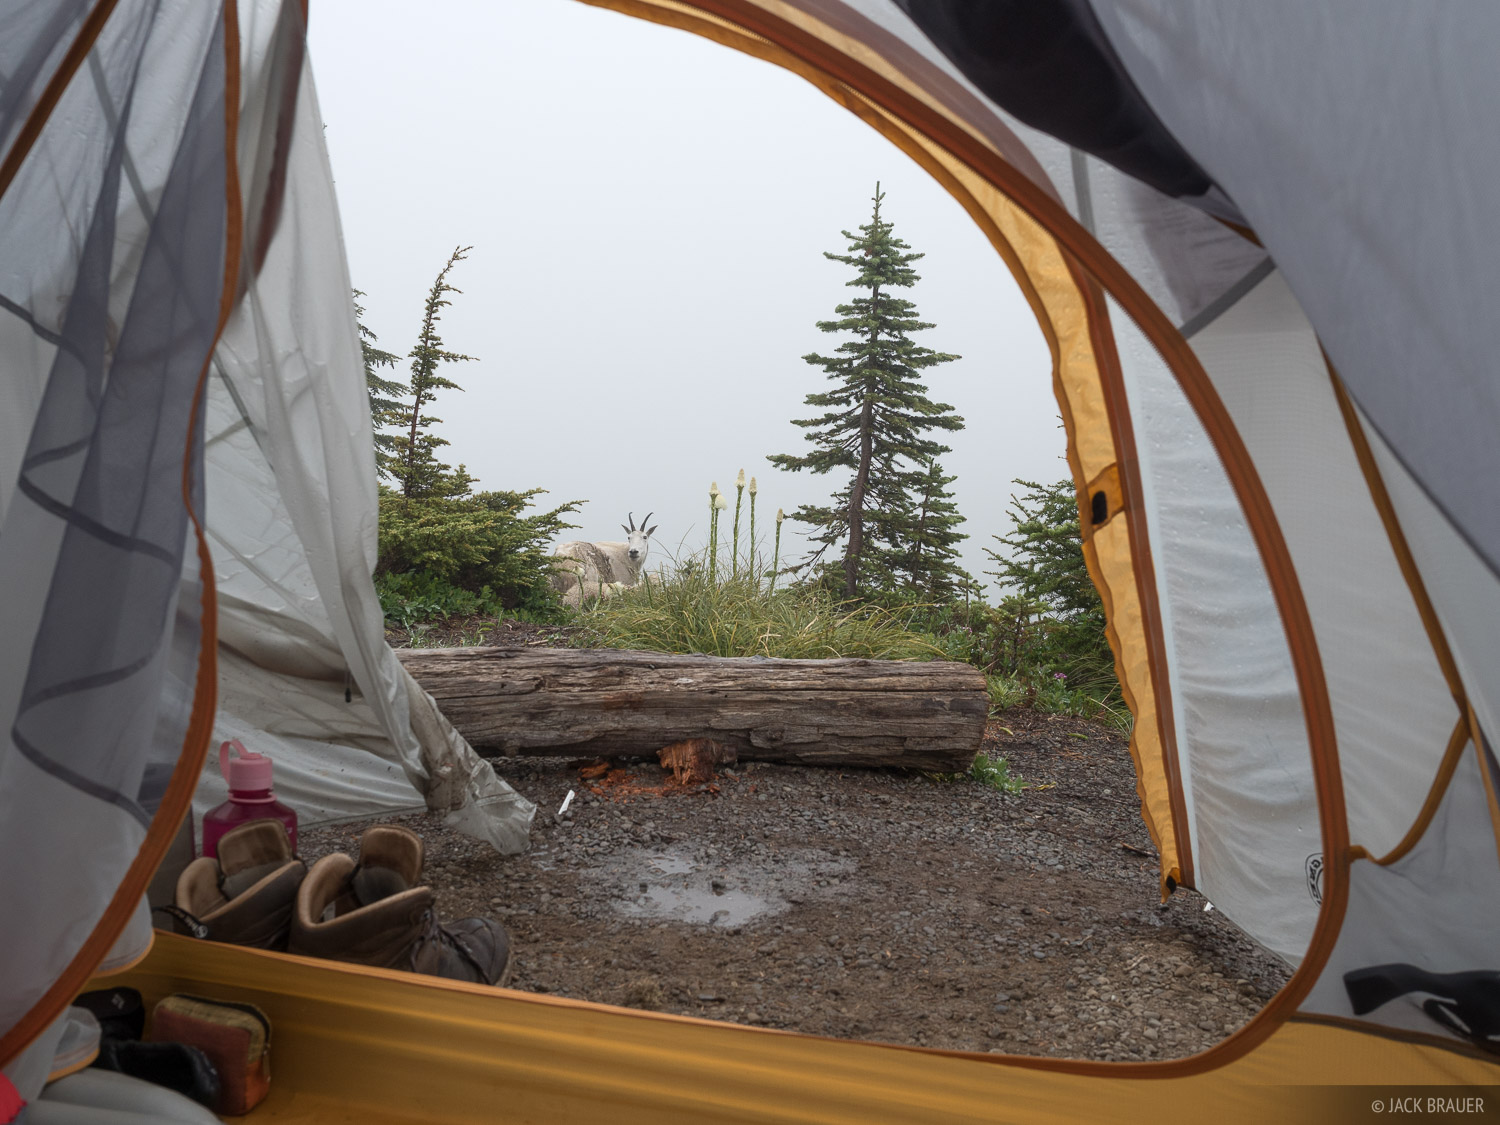 Olympic Peninsula, Sol Duc, Washington, mountain goat, tent, Olympic National Park